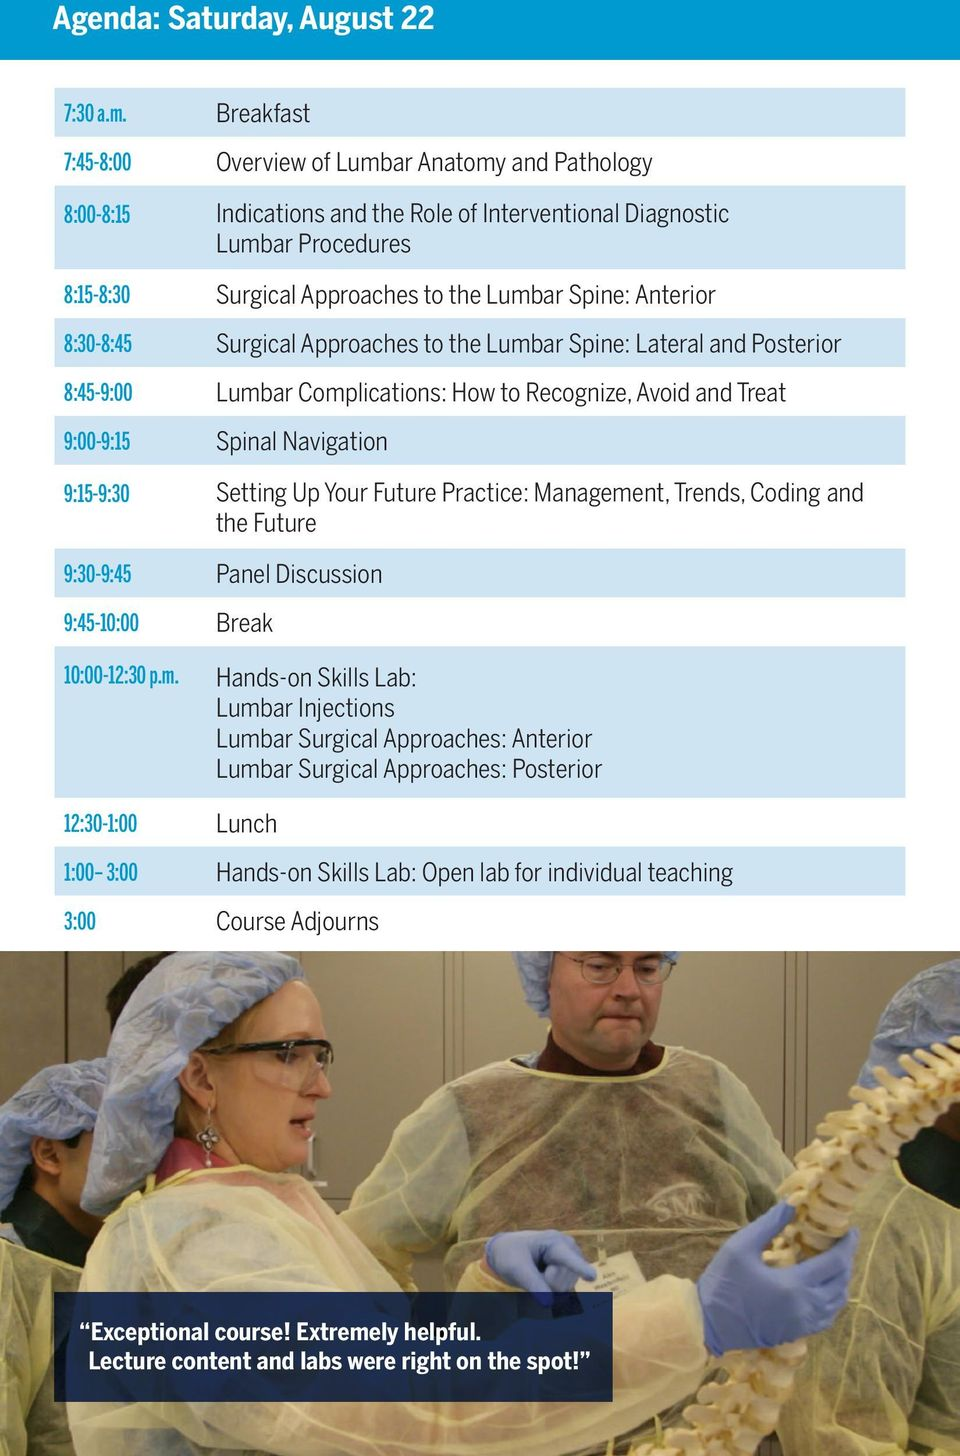 Anterior 8:30-8:45 Surgical Approaches to the Lumbar Spine: Lateral and Posterior 8:45-9:00 Lumbar Complications: How to Recognize, Avoid and Treat 9:00-9:15 Spinal Navigation 9:15-9:30 Setting Up